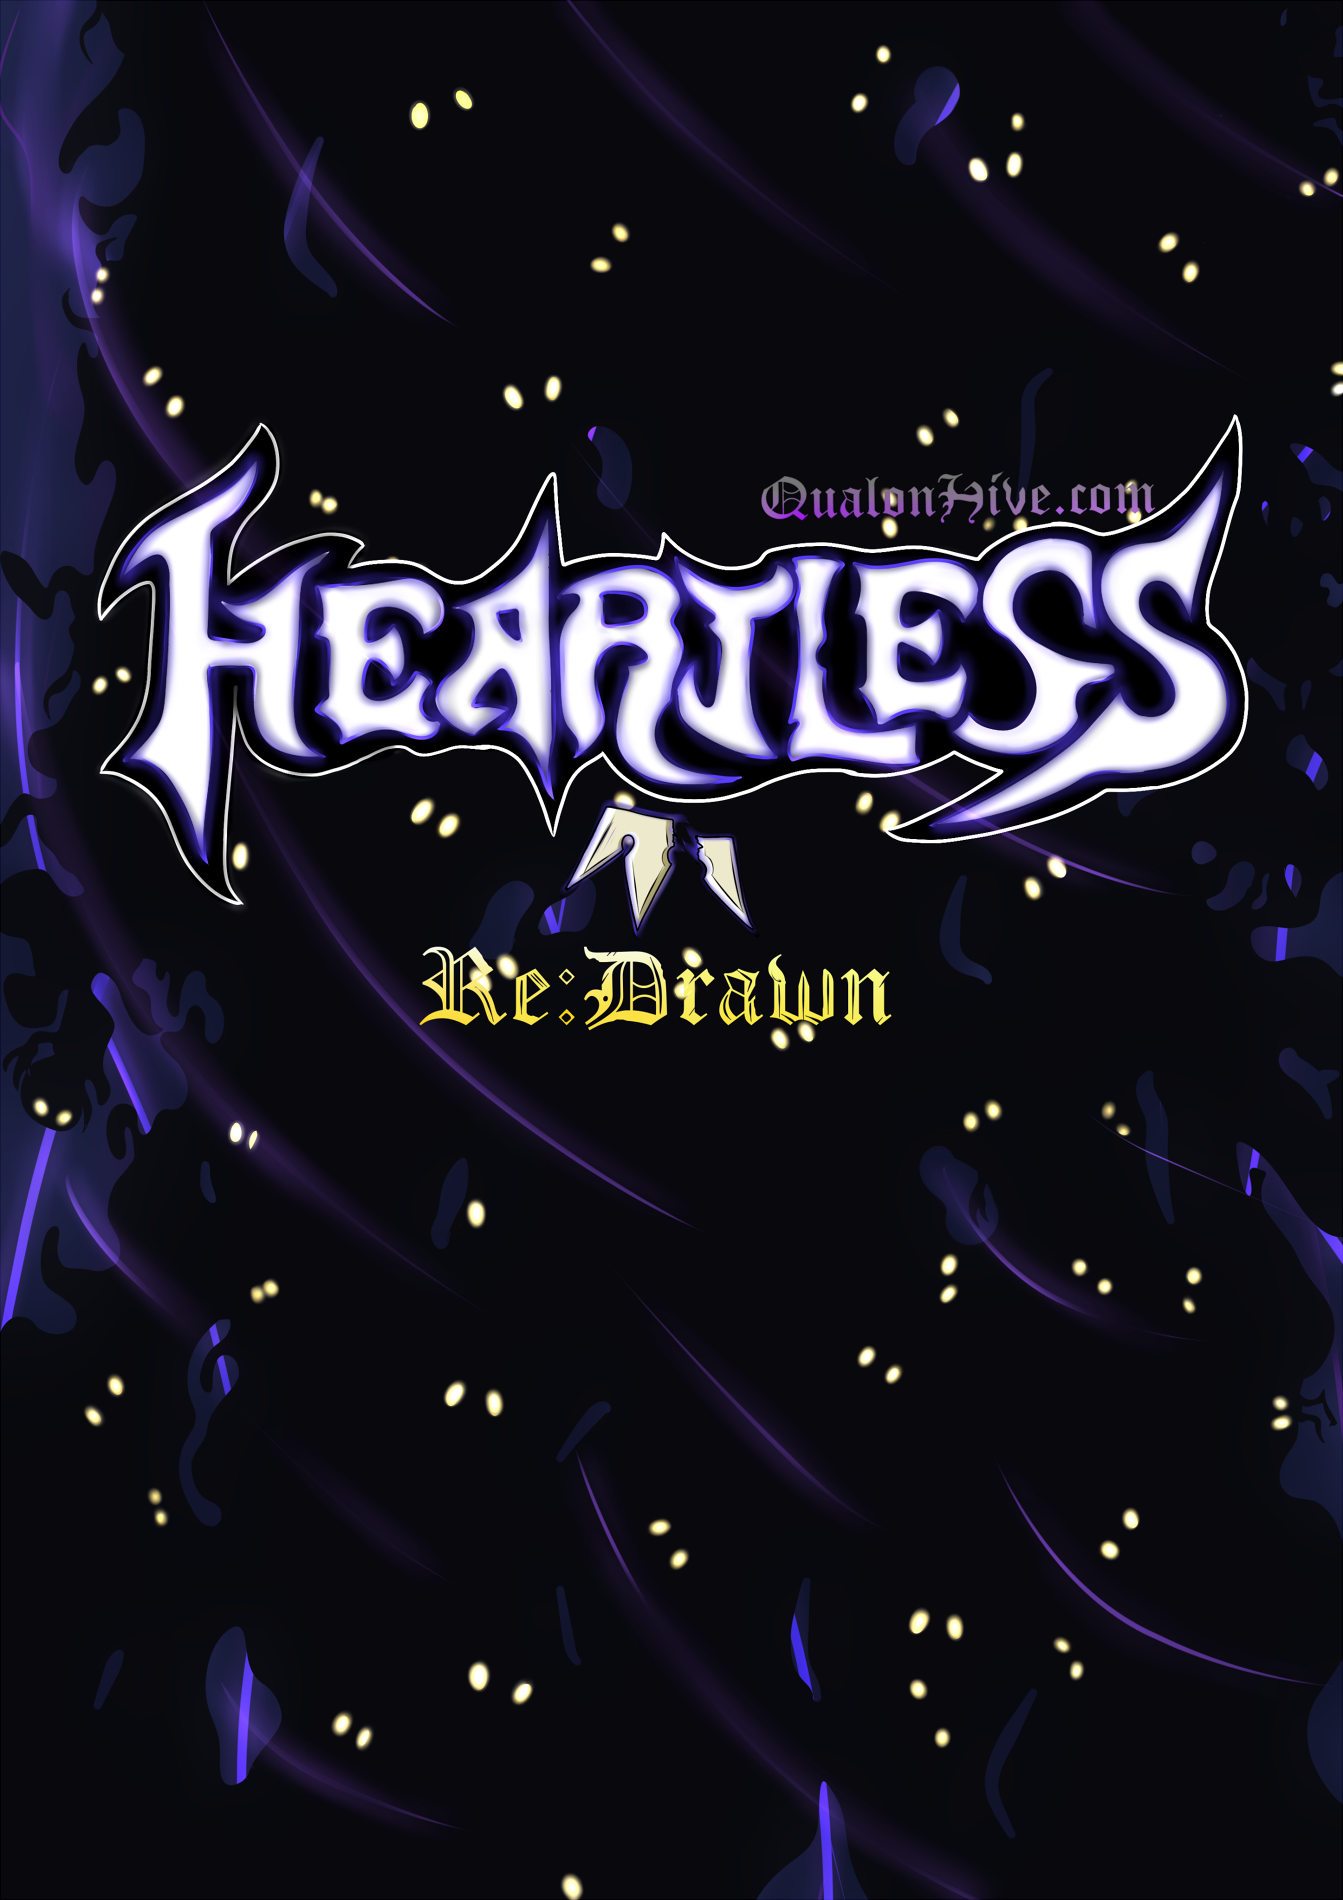 Heartless Re:Drawn